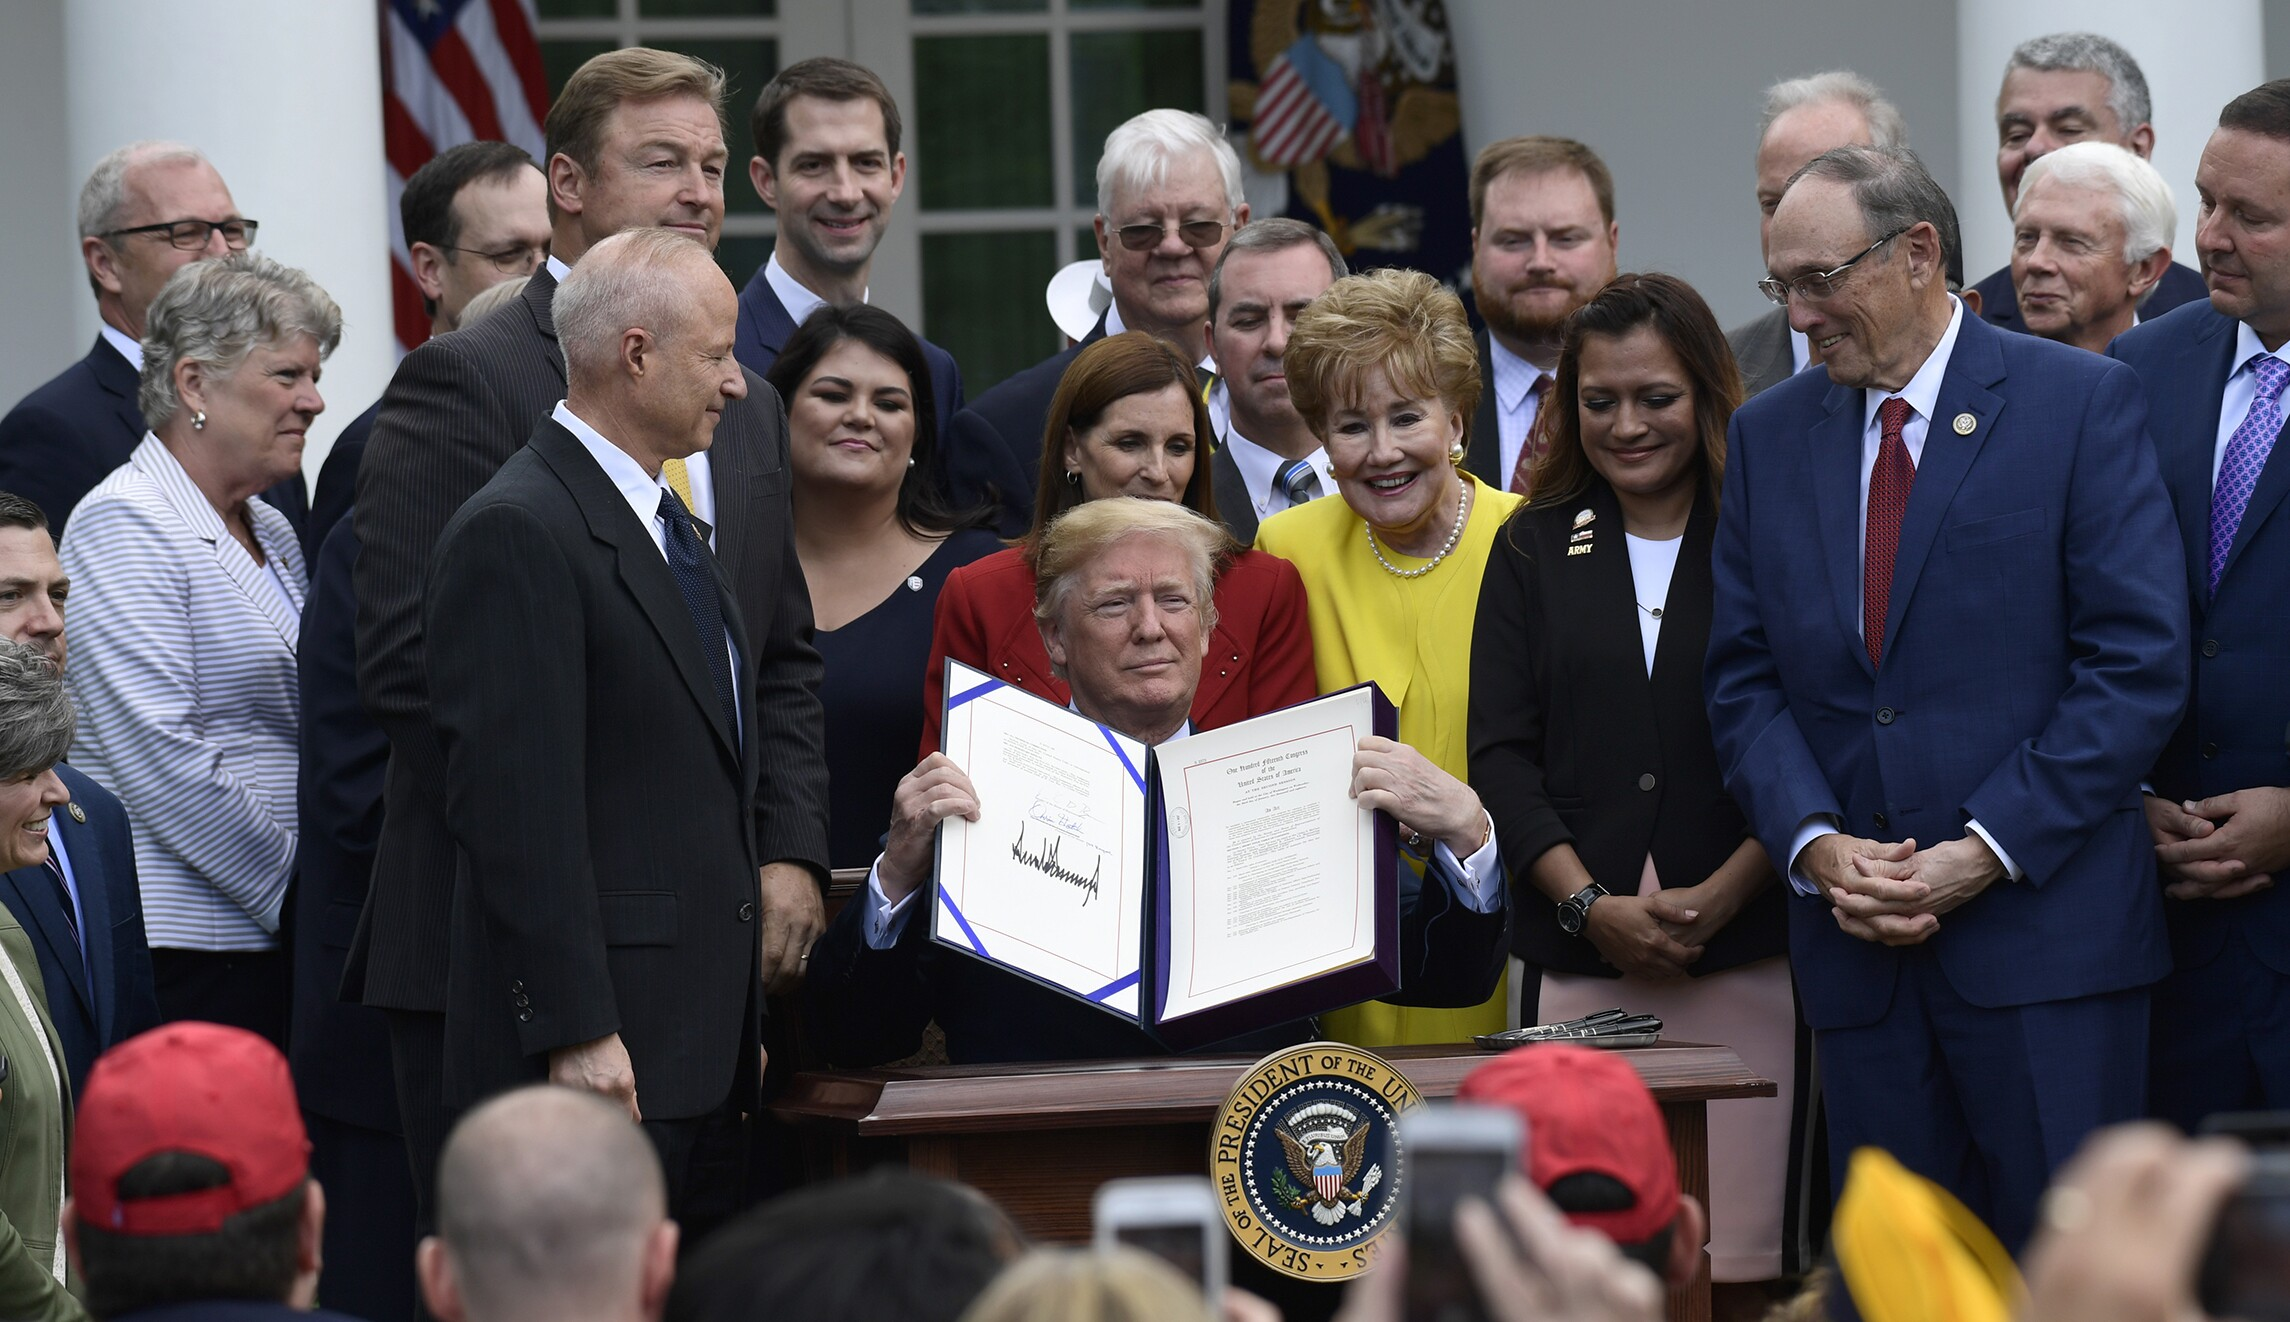 Trump signs VA Mission Act into law to give veterans more